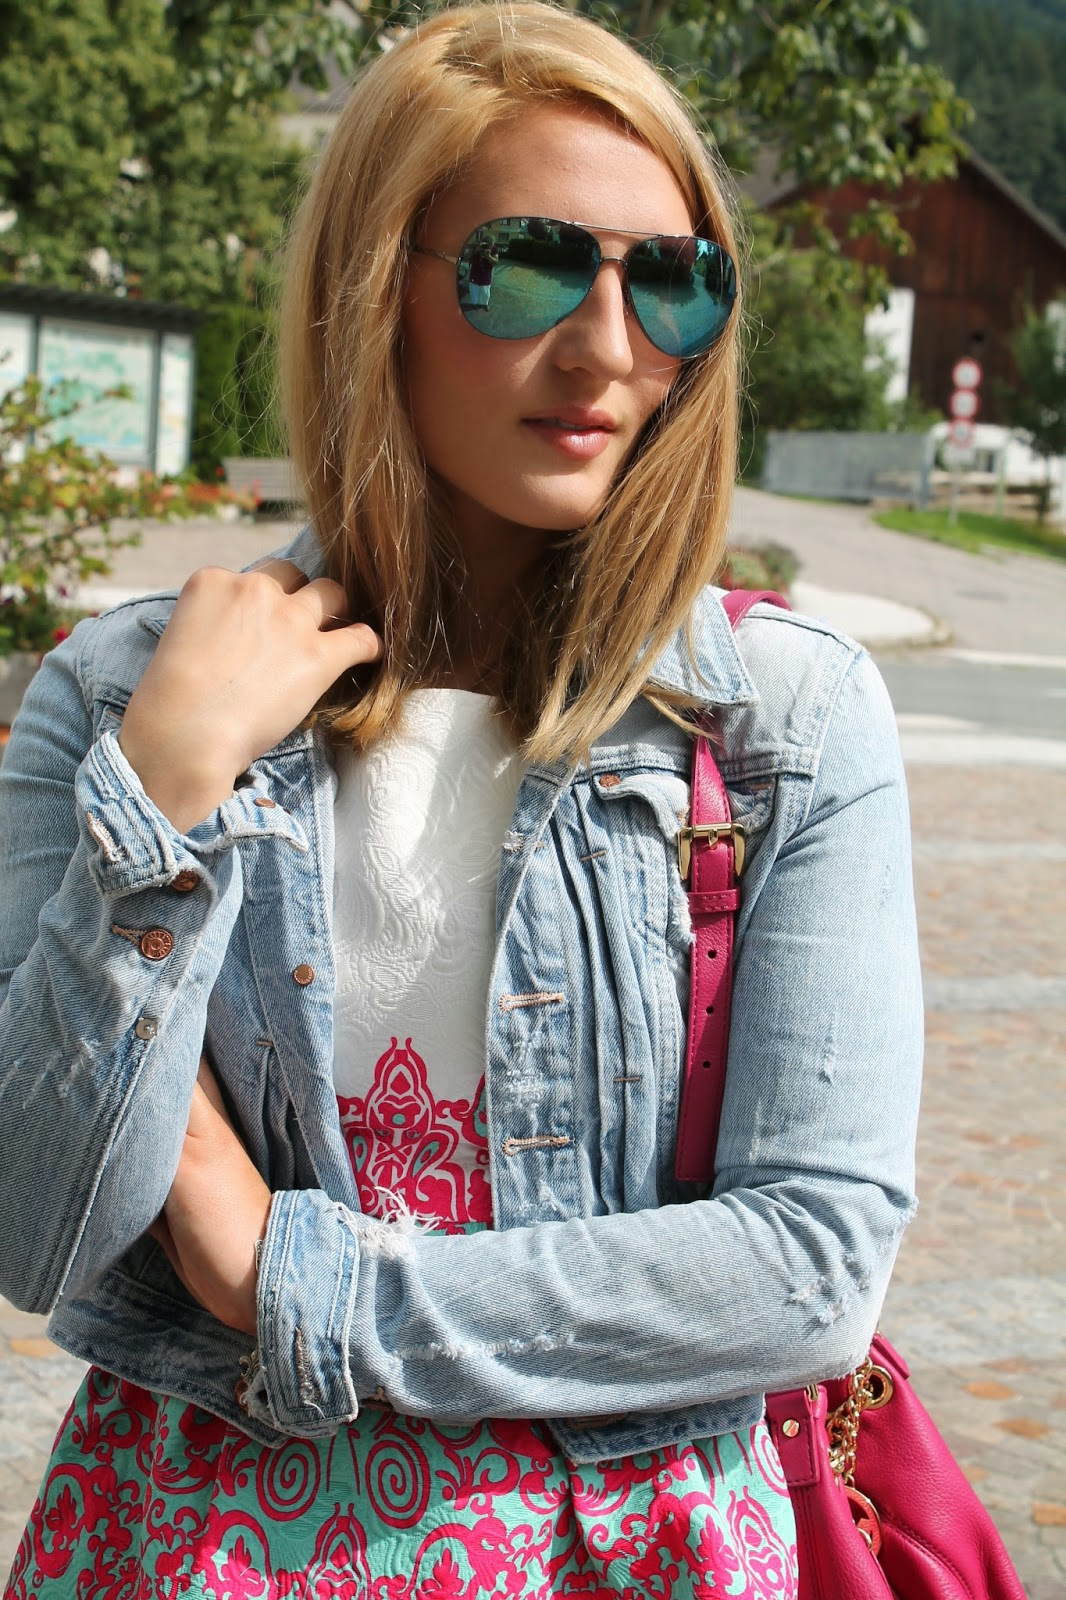 Fashionblogger Austria / Österreich / Deutsch / German / Kärnten / Carinthia / Klagenfurt / Köttmannsdorf / Spring Look / Classy / Edgy / Summer / Summer Style 2014 / Summer Look / Fashionista Look /   / Summer Dress / Pattern / Oasap Dress / Jeans Jacket / Michael Kors jetset bag pink / White Converse / Mirrored Glasses / Streetstyle/